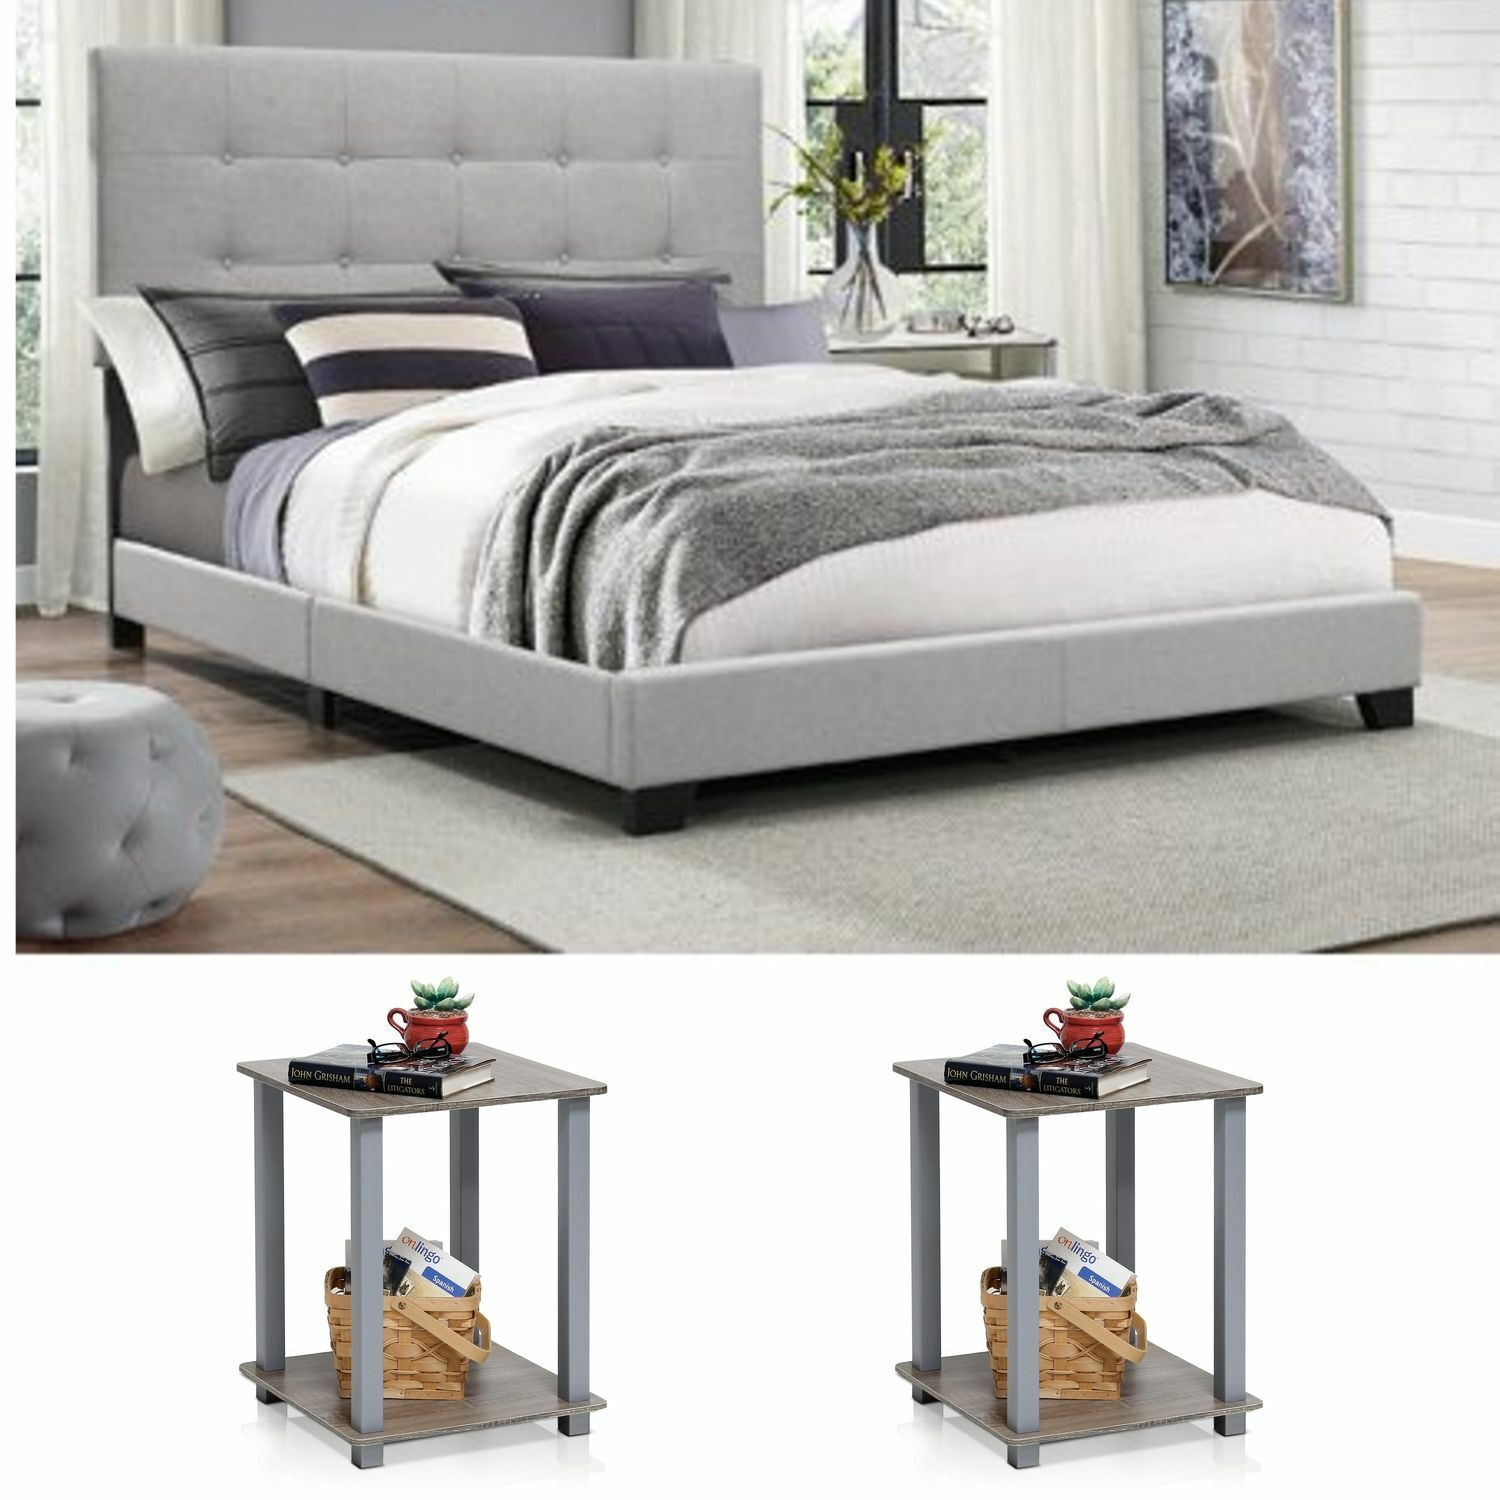 Contemporary King Bed Gray Wood Finish Fabric Headboard Home Bedroom Furniture For Sale Online Ebay